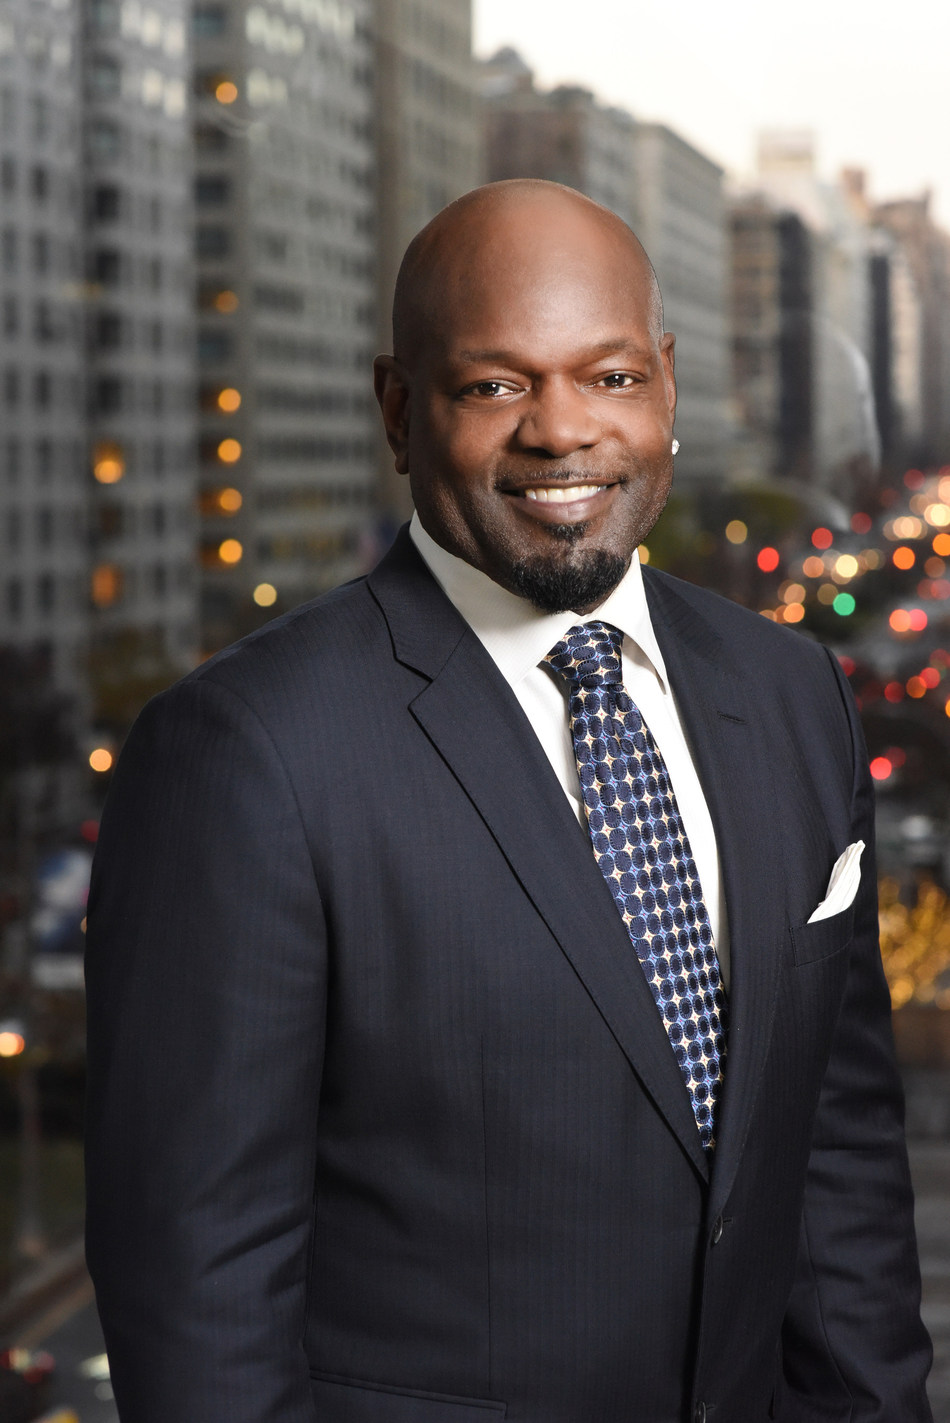 National Football League (NFL) Hall of Fame running back and successful entrepreneur Emmitt Smith